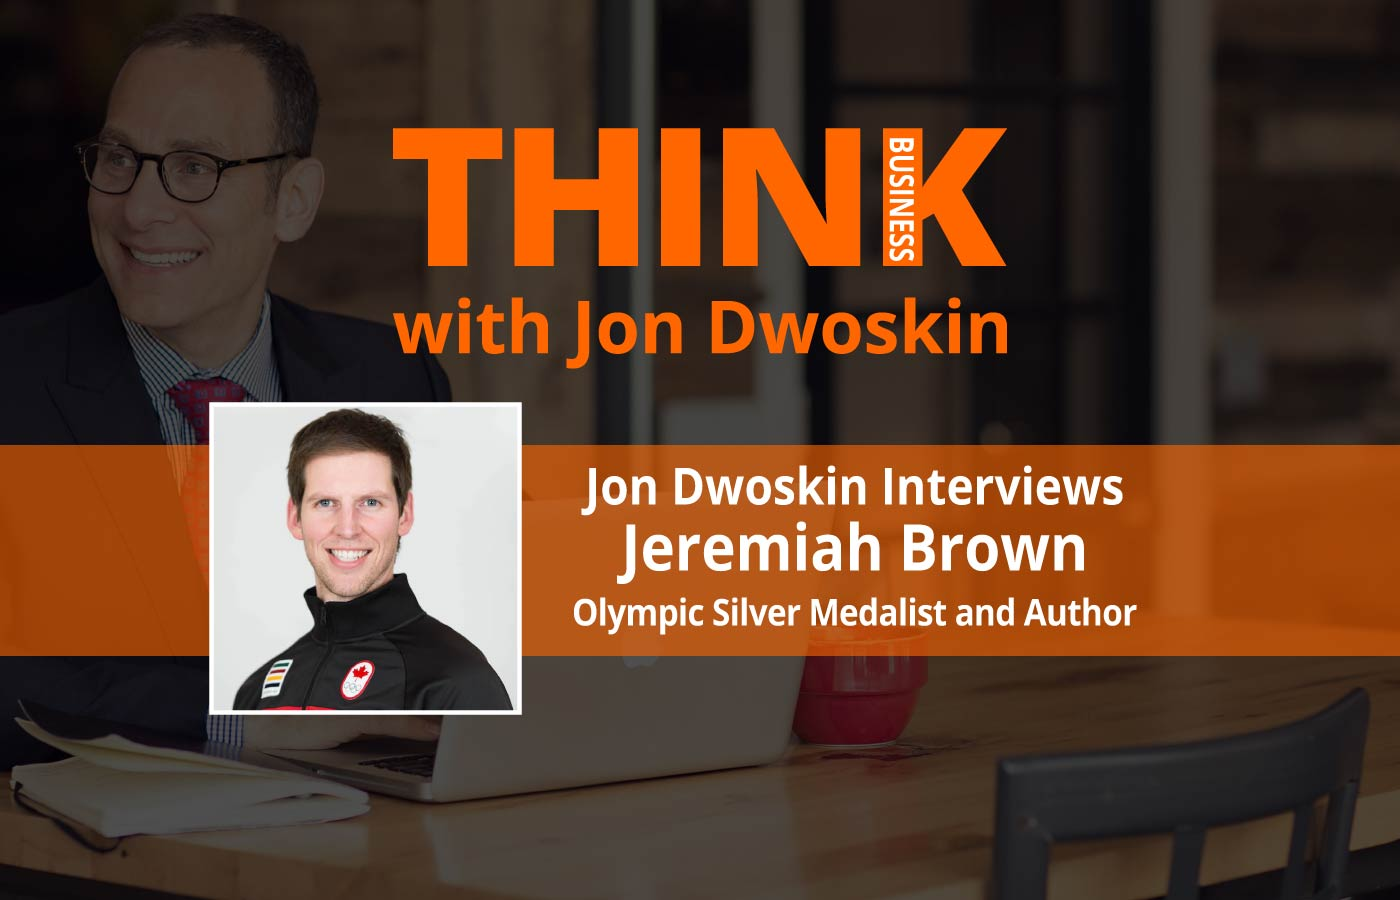 THINK Business Podcast: Jon Dwoskin Interviews Jeremiah Brown, Olympic Silver Medalist and Author